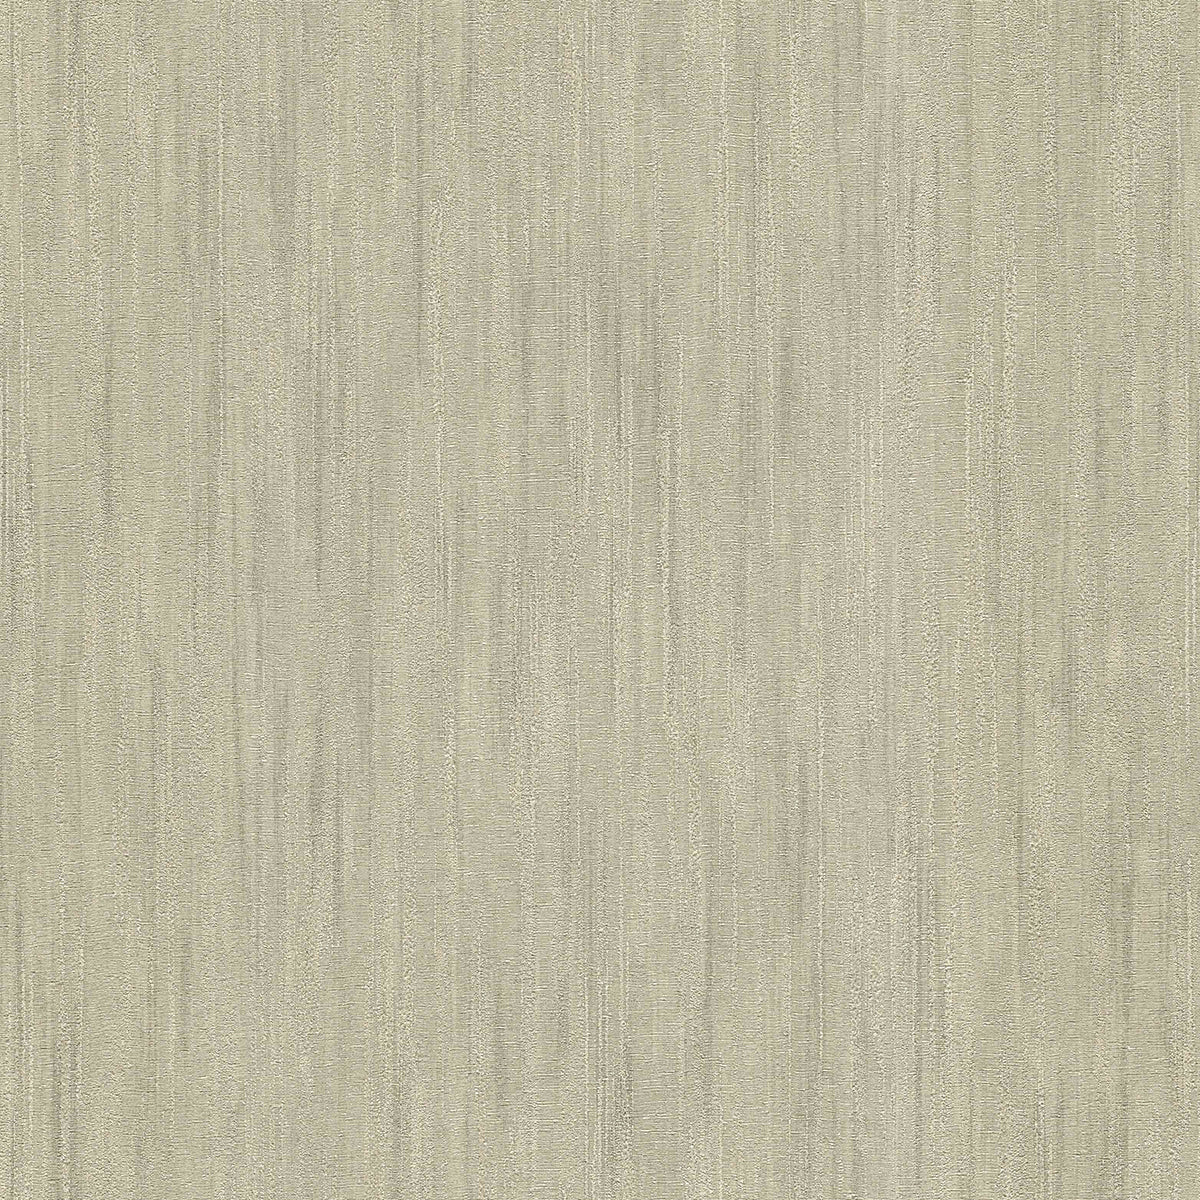 Tronchetto Bronze Vertical Texture Wallpaper